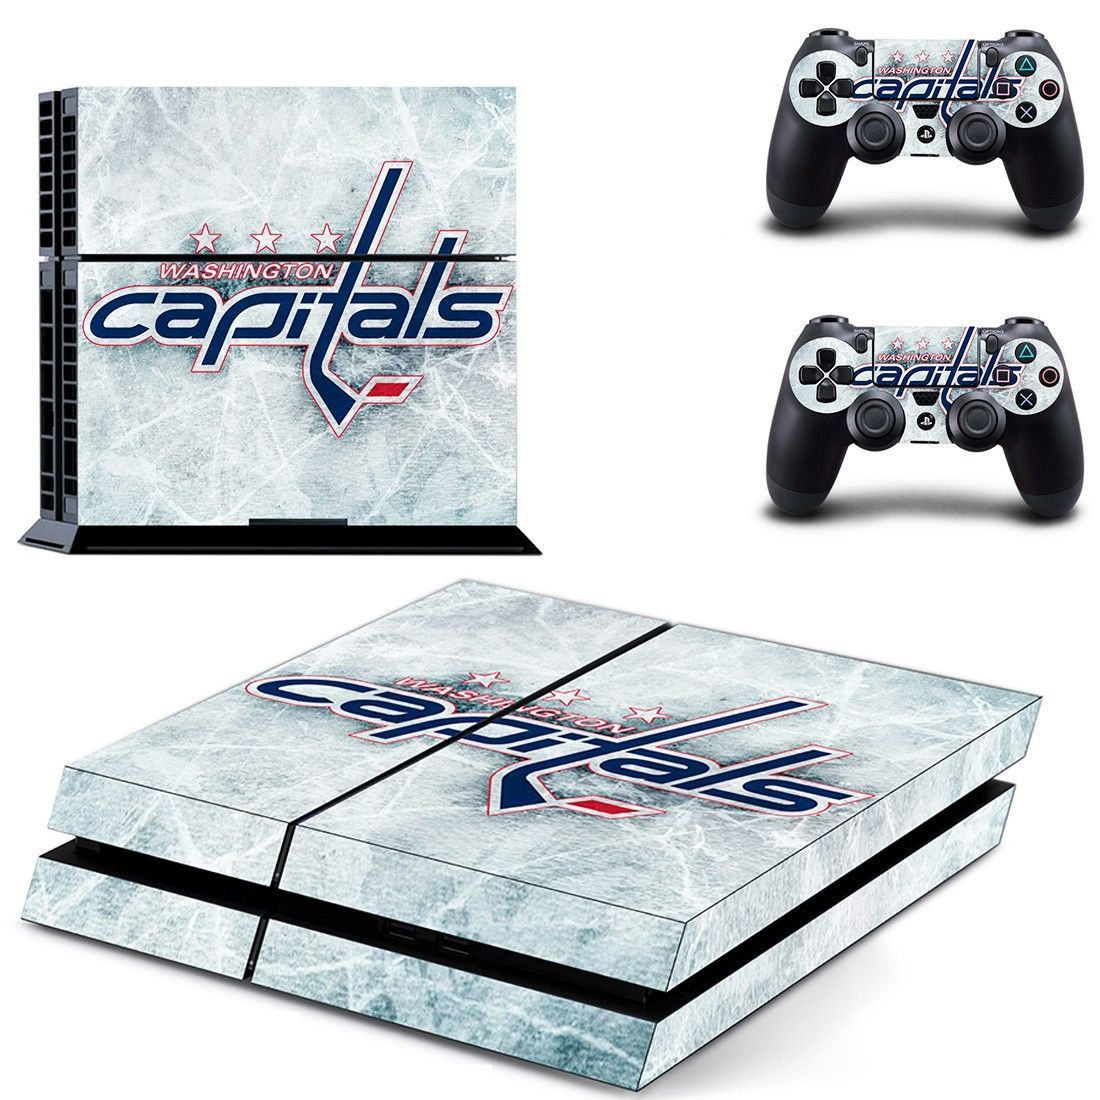 Washington Capitals Ps4 Skin Decal For Console And Controllers Ps4 Skins Ps4 Skins Decals Ps4 Skins Stickers